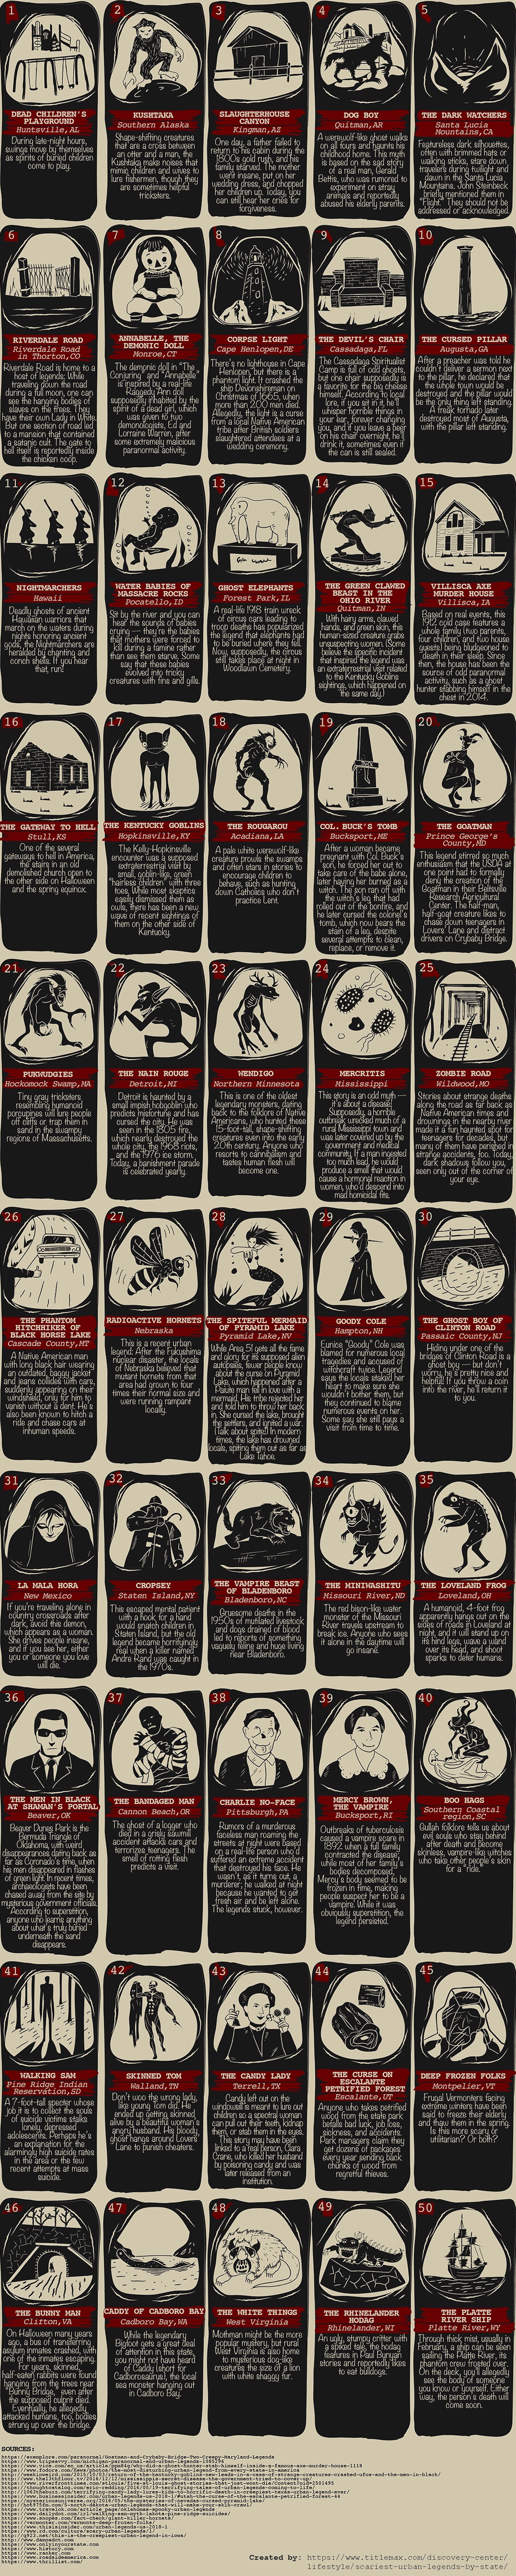 Descriptions of US urban legends